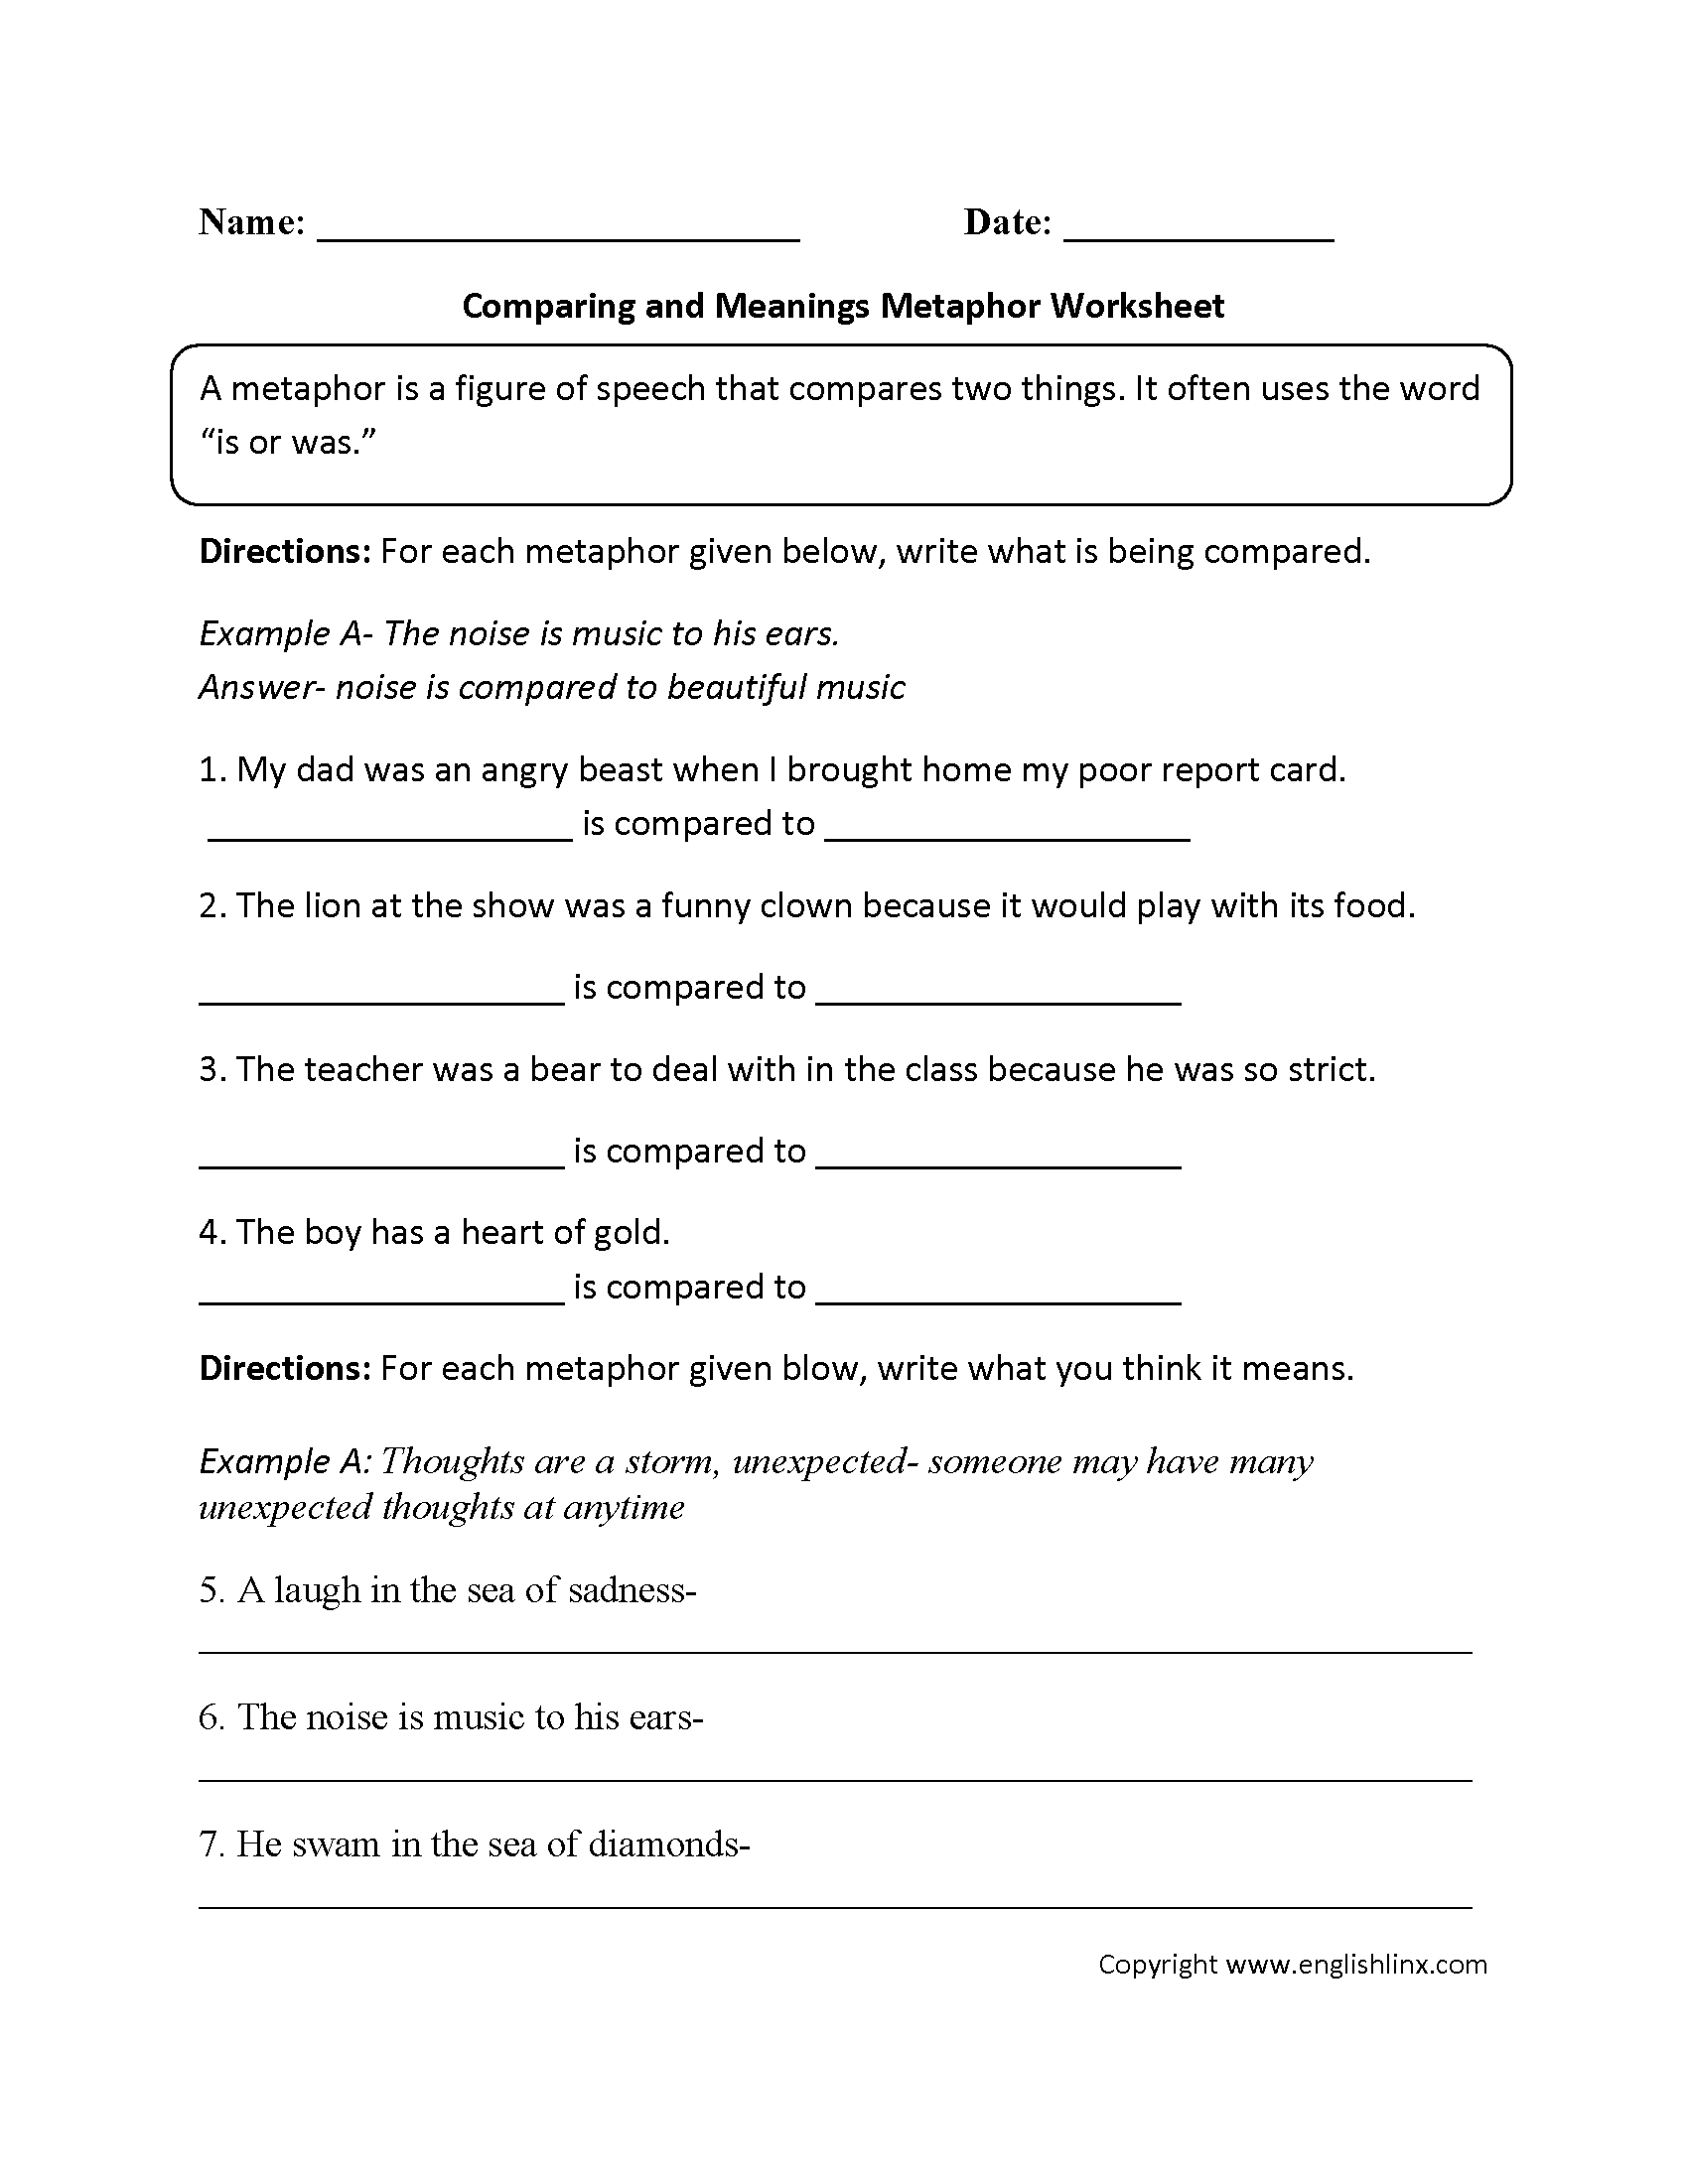 worksheet What Is A Metaphor Math Worksheet comparing and meanings metaphor worksheet anchor papers worksheet